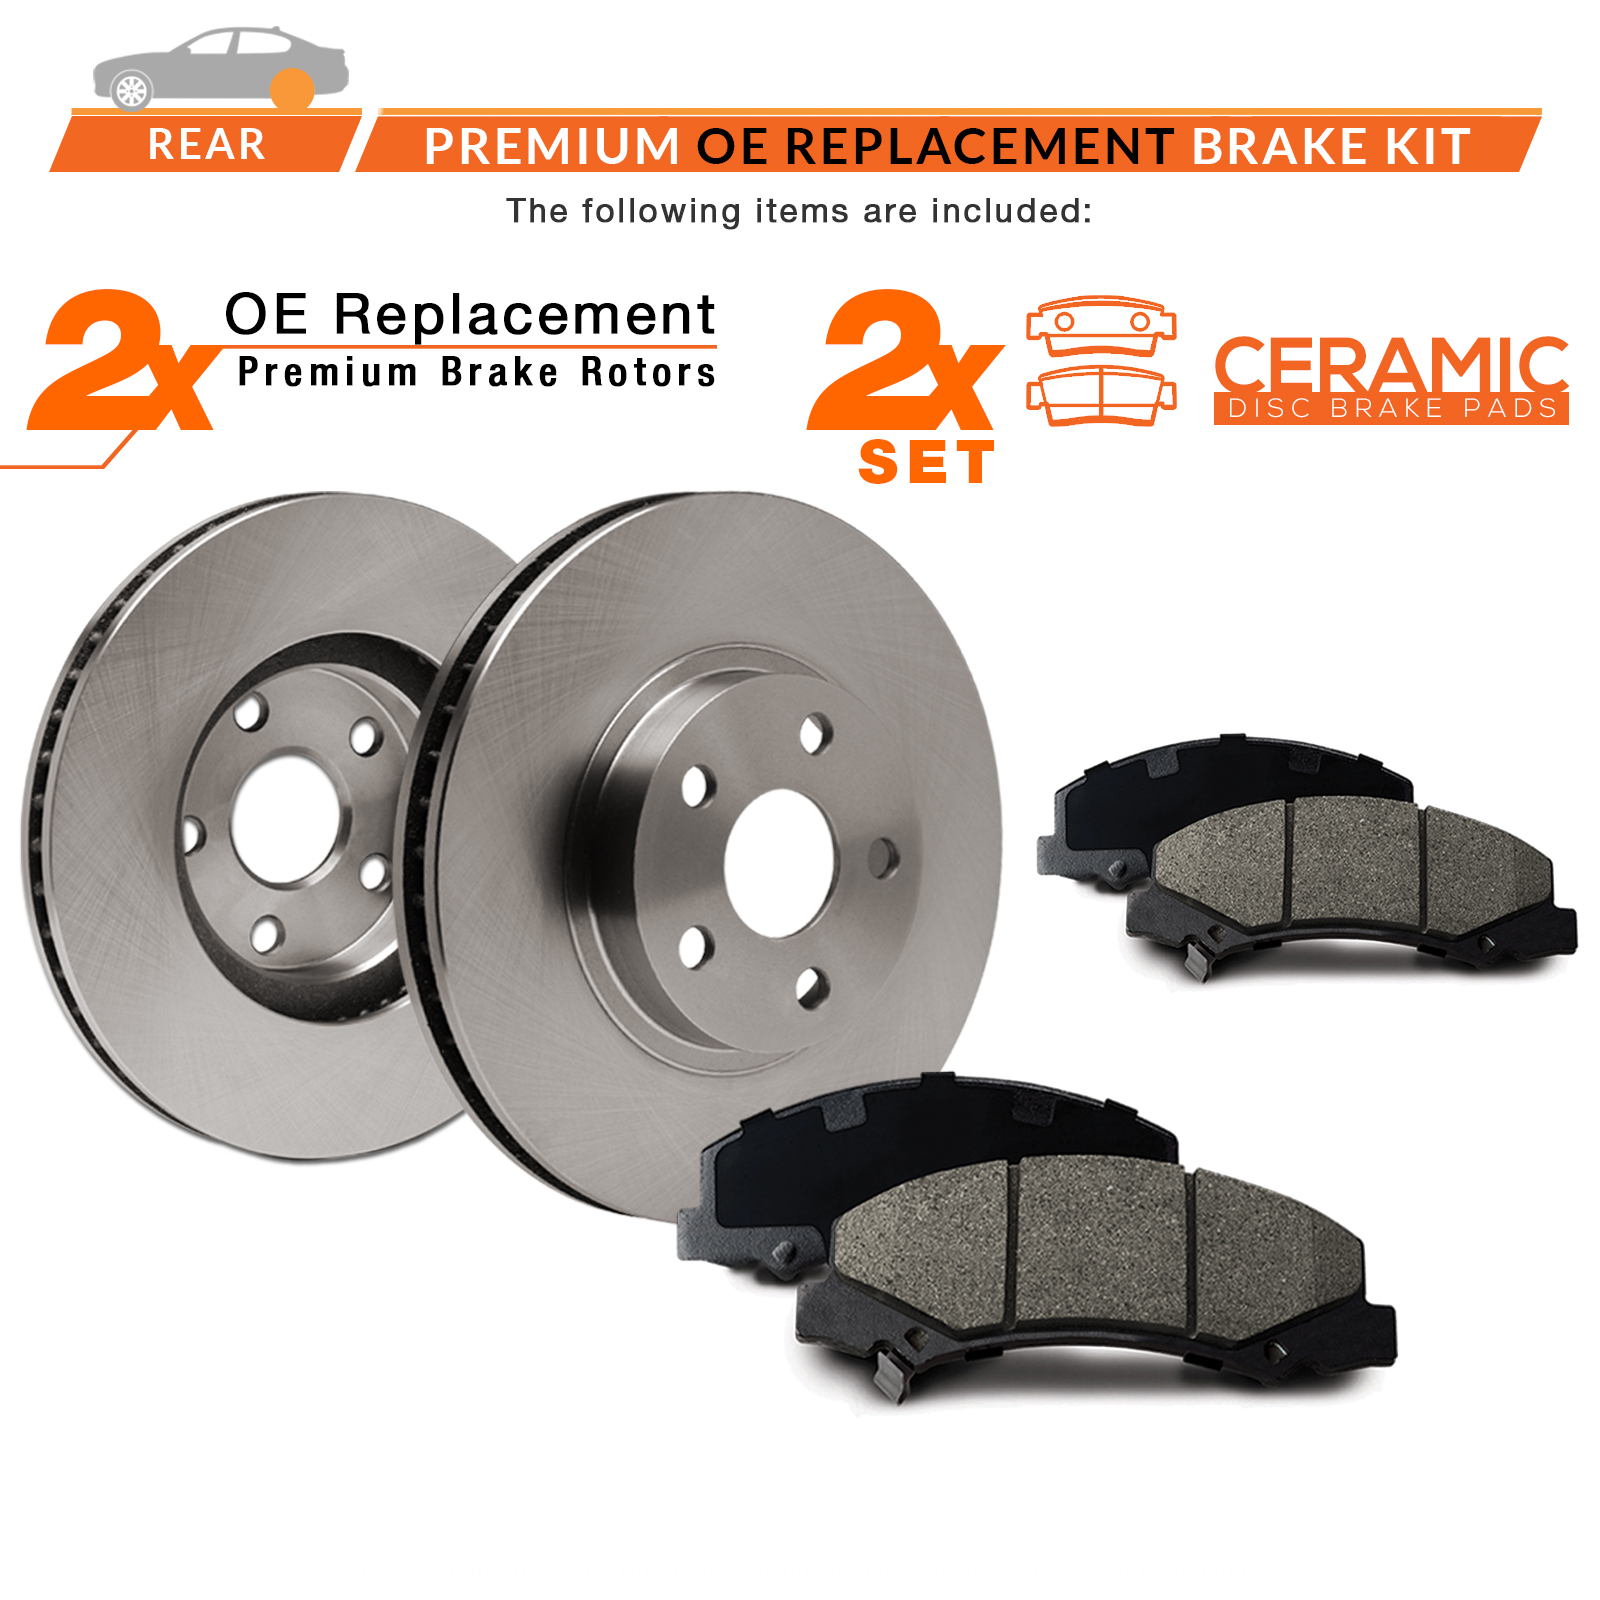 TA076742 Max Brakes Rear Premium Brake Kit Fits: 2011 11 2012 12 2013 13 Chevy Impala OE Series Rotors + Metallic Pads